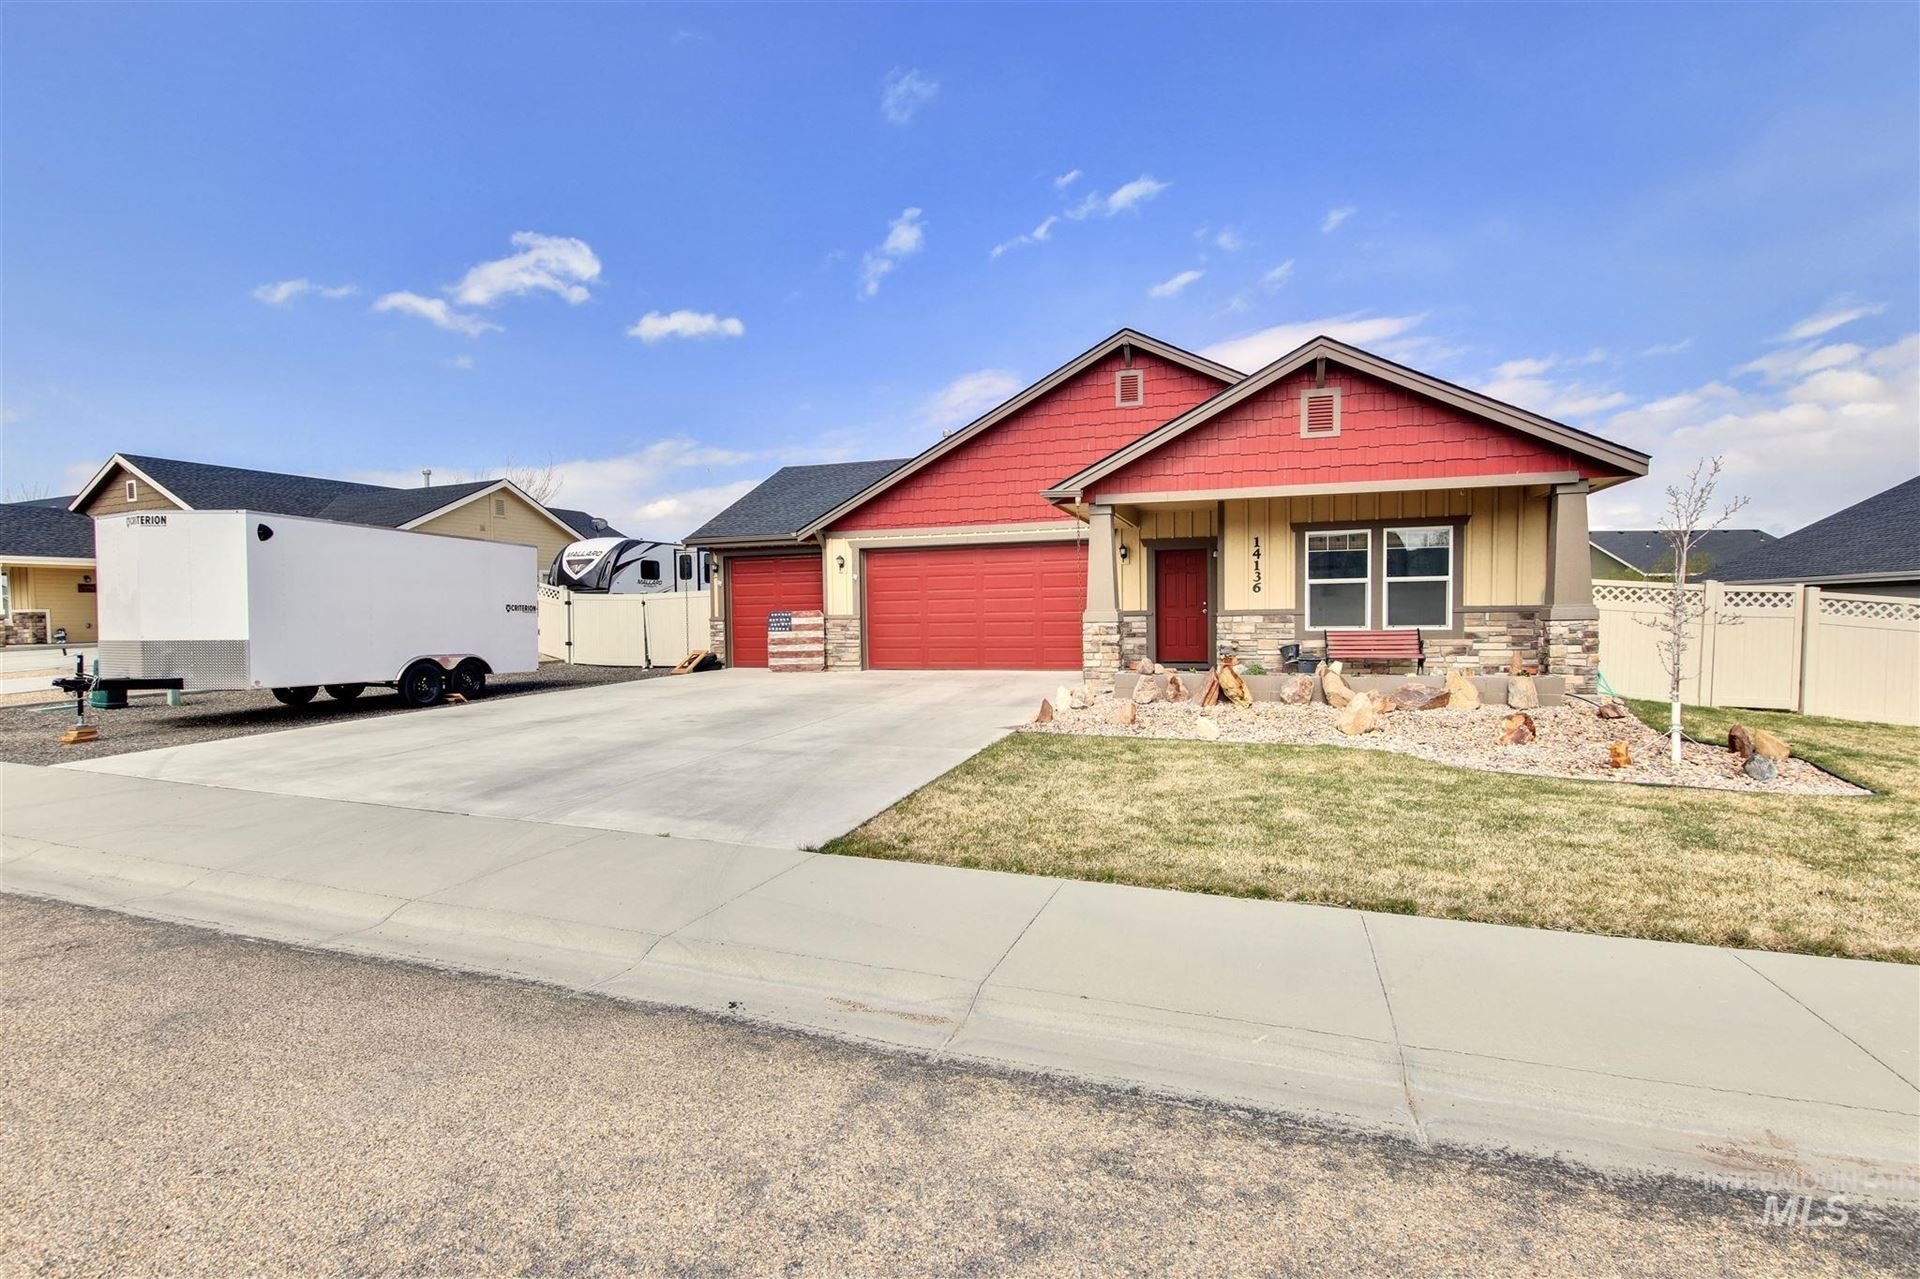 Photo of 14136 Silver Lining Dr, Caldwell, ID 83607 (MLS # 98799786)